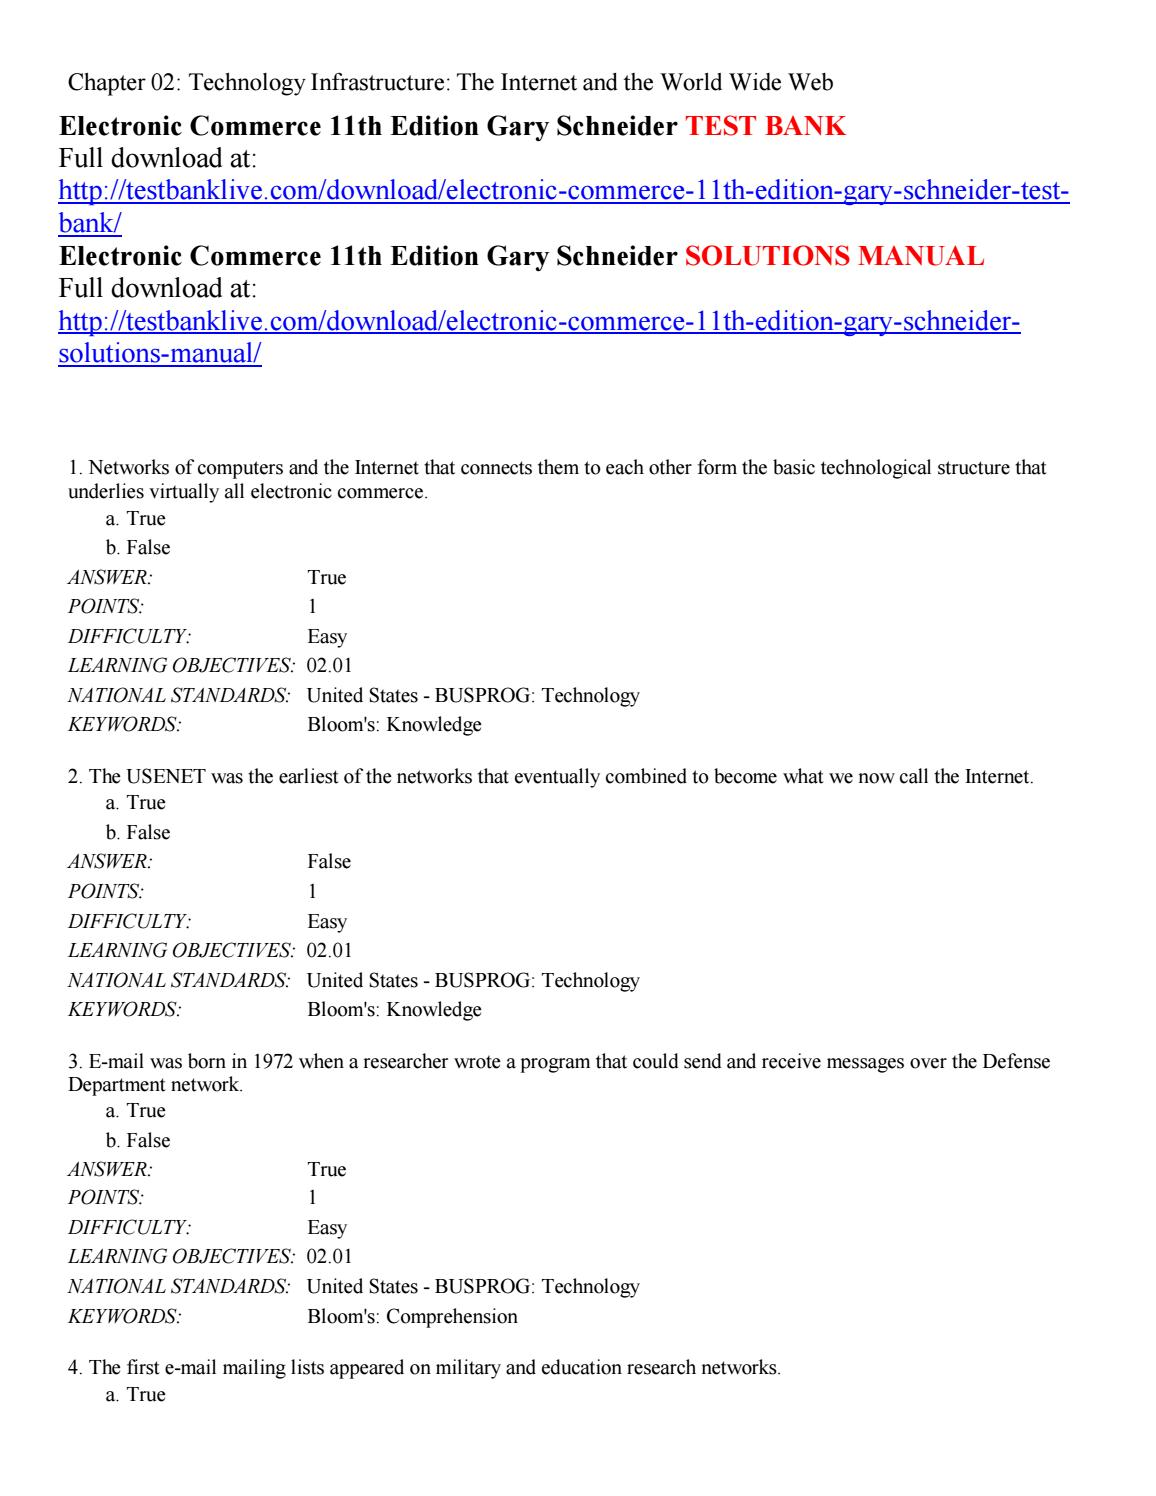 Electronic commerce 11th edition gary schneider test bank by ZWzz - issuu